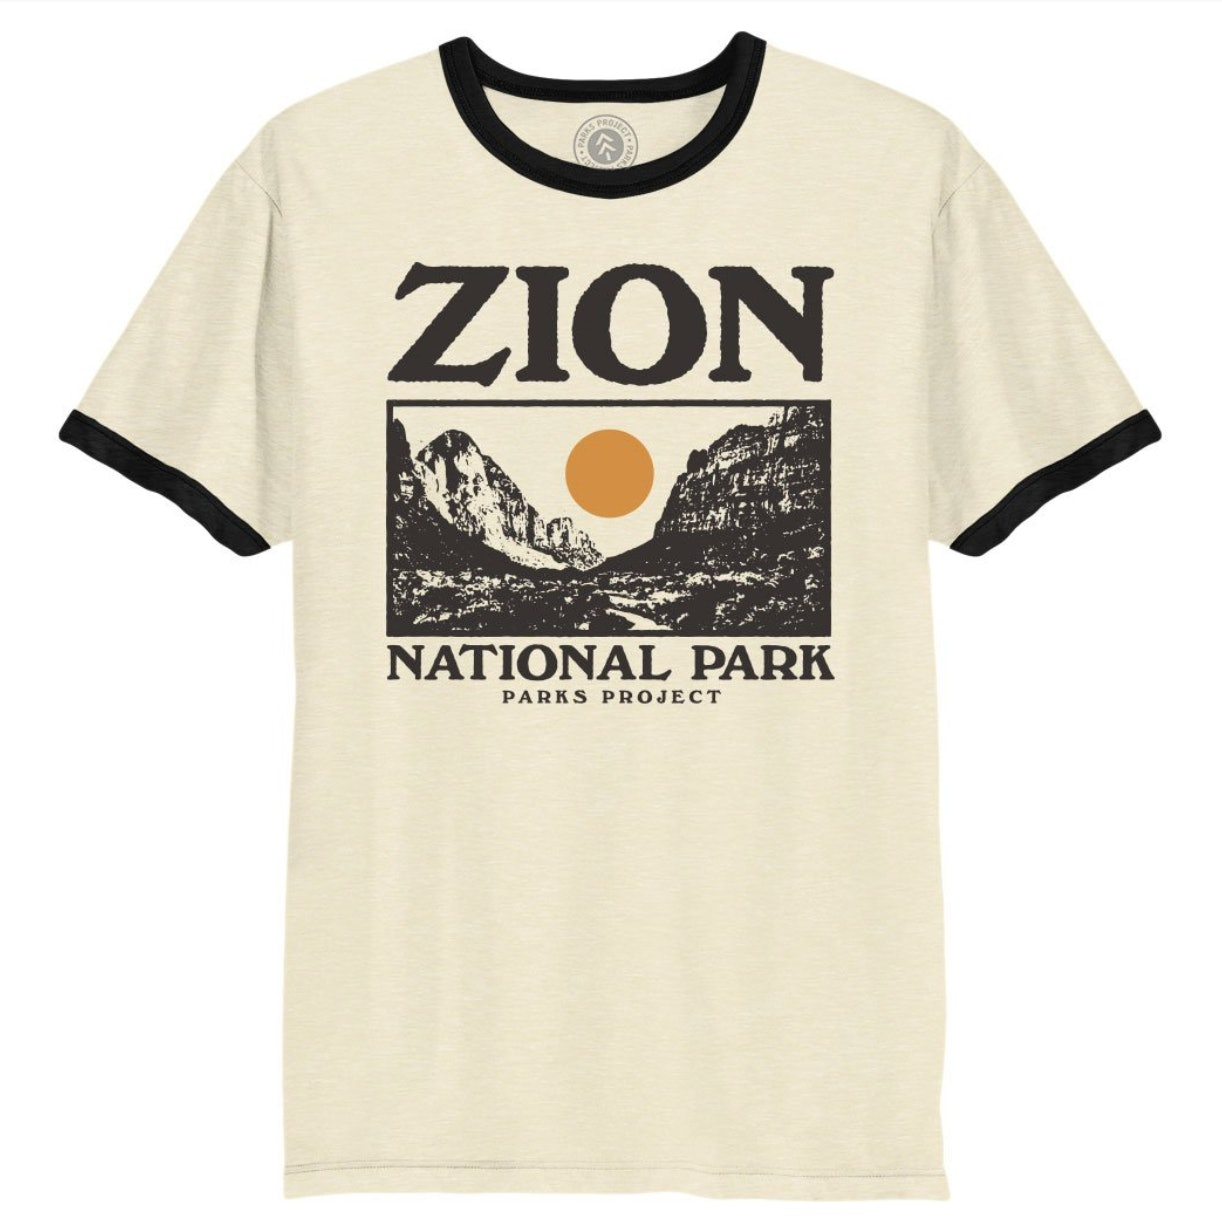 fef98da7 15 Vintage Graphic Tees That'll Help You Ace Dad Style In A Totally  Different Way